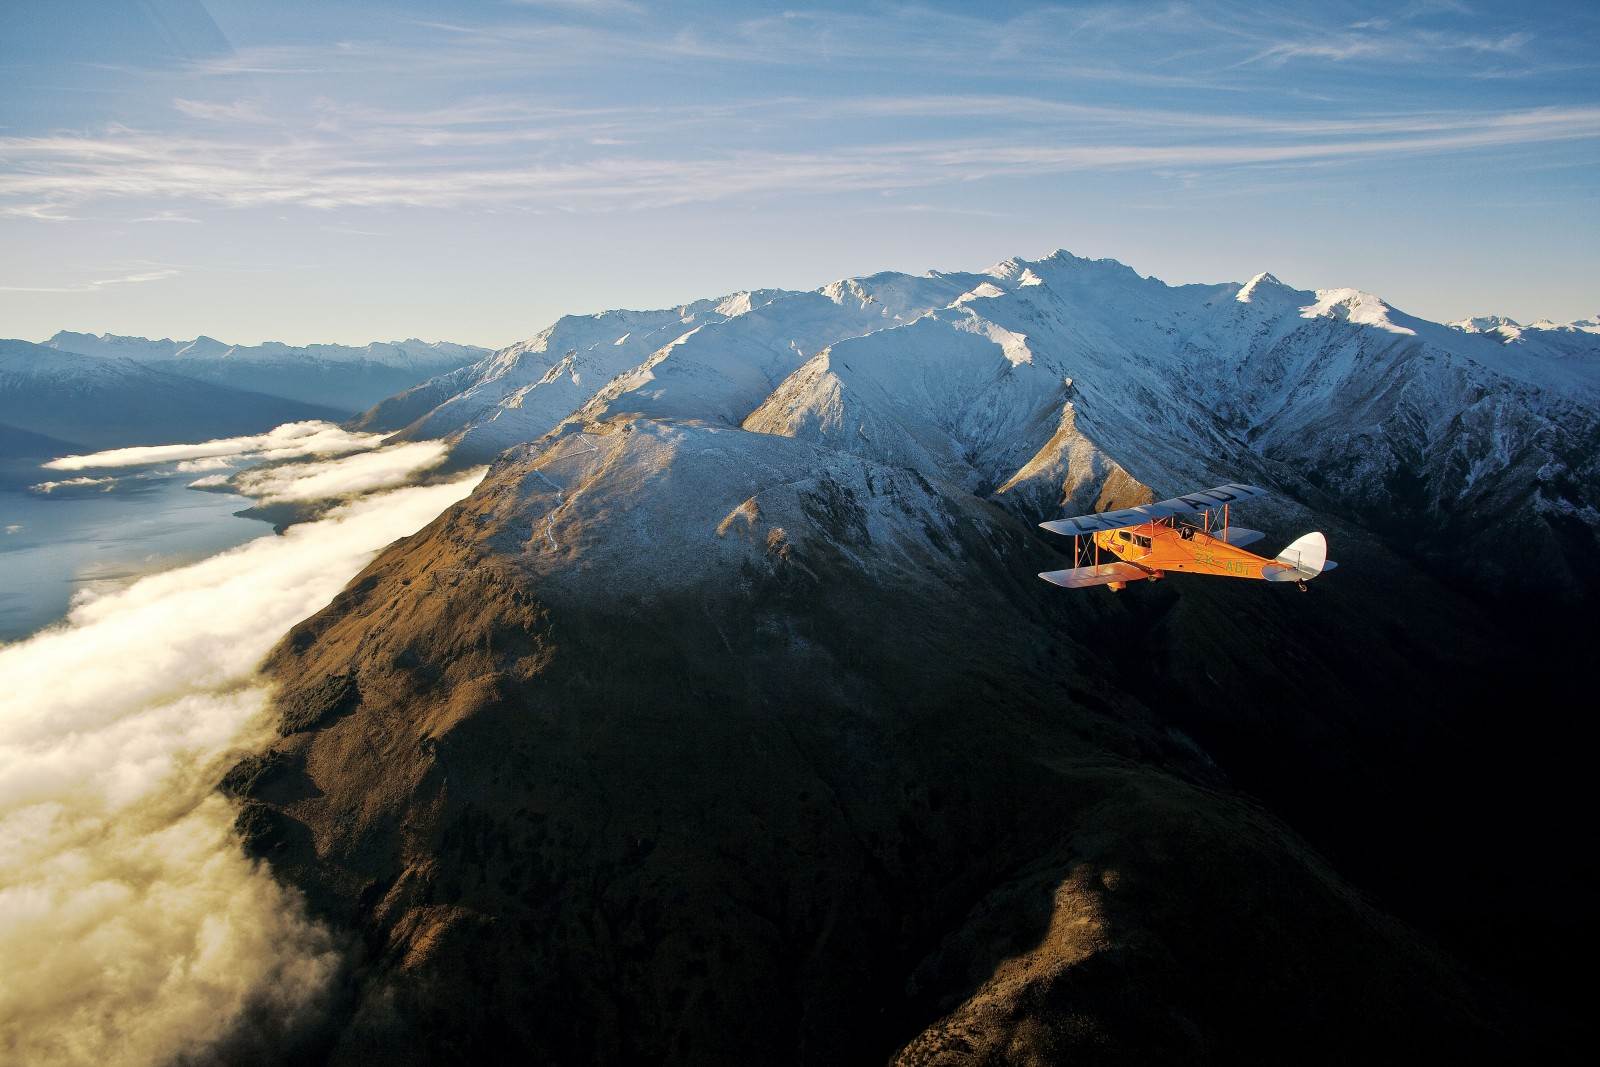 Rebuilt with modern materials but to old and exact specifications, the original Bert Mercer Fox Moth makes a crossing over the Southern Alps to revisit old haunts from 75 years ago. Of all heritage aircraft in New Zealand, ZK-ADI, the precursor of our entire airline industry, is perhaps the most venerated.